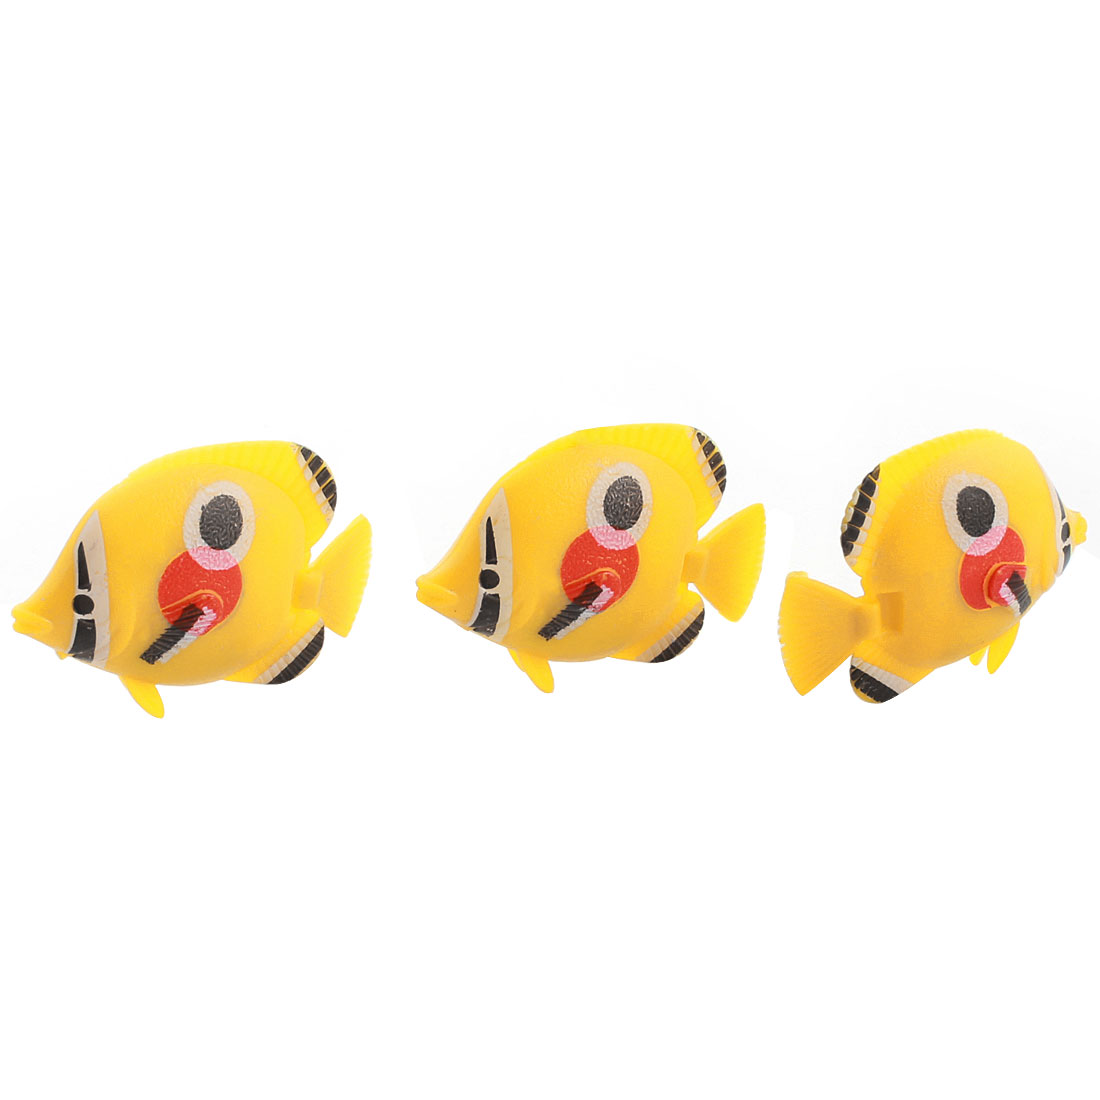 3 Pcs Aquarium Manmade Wiggly Tail Swimming Fishes Decor Yellow Red